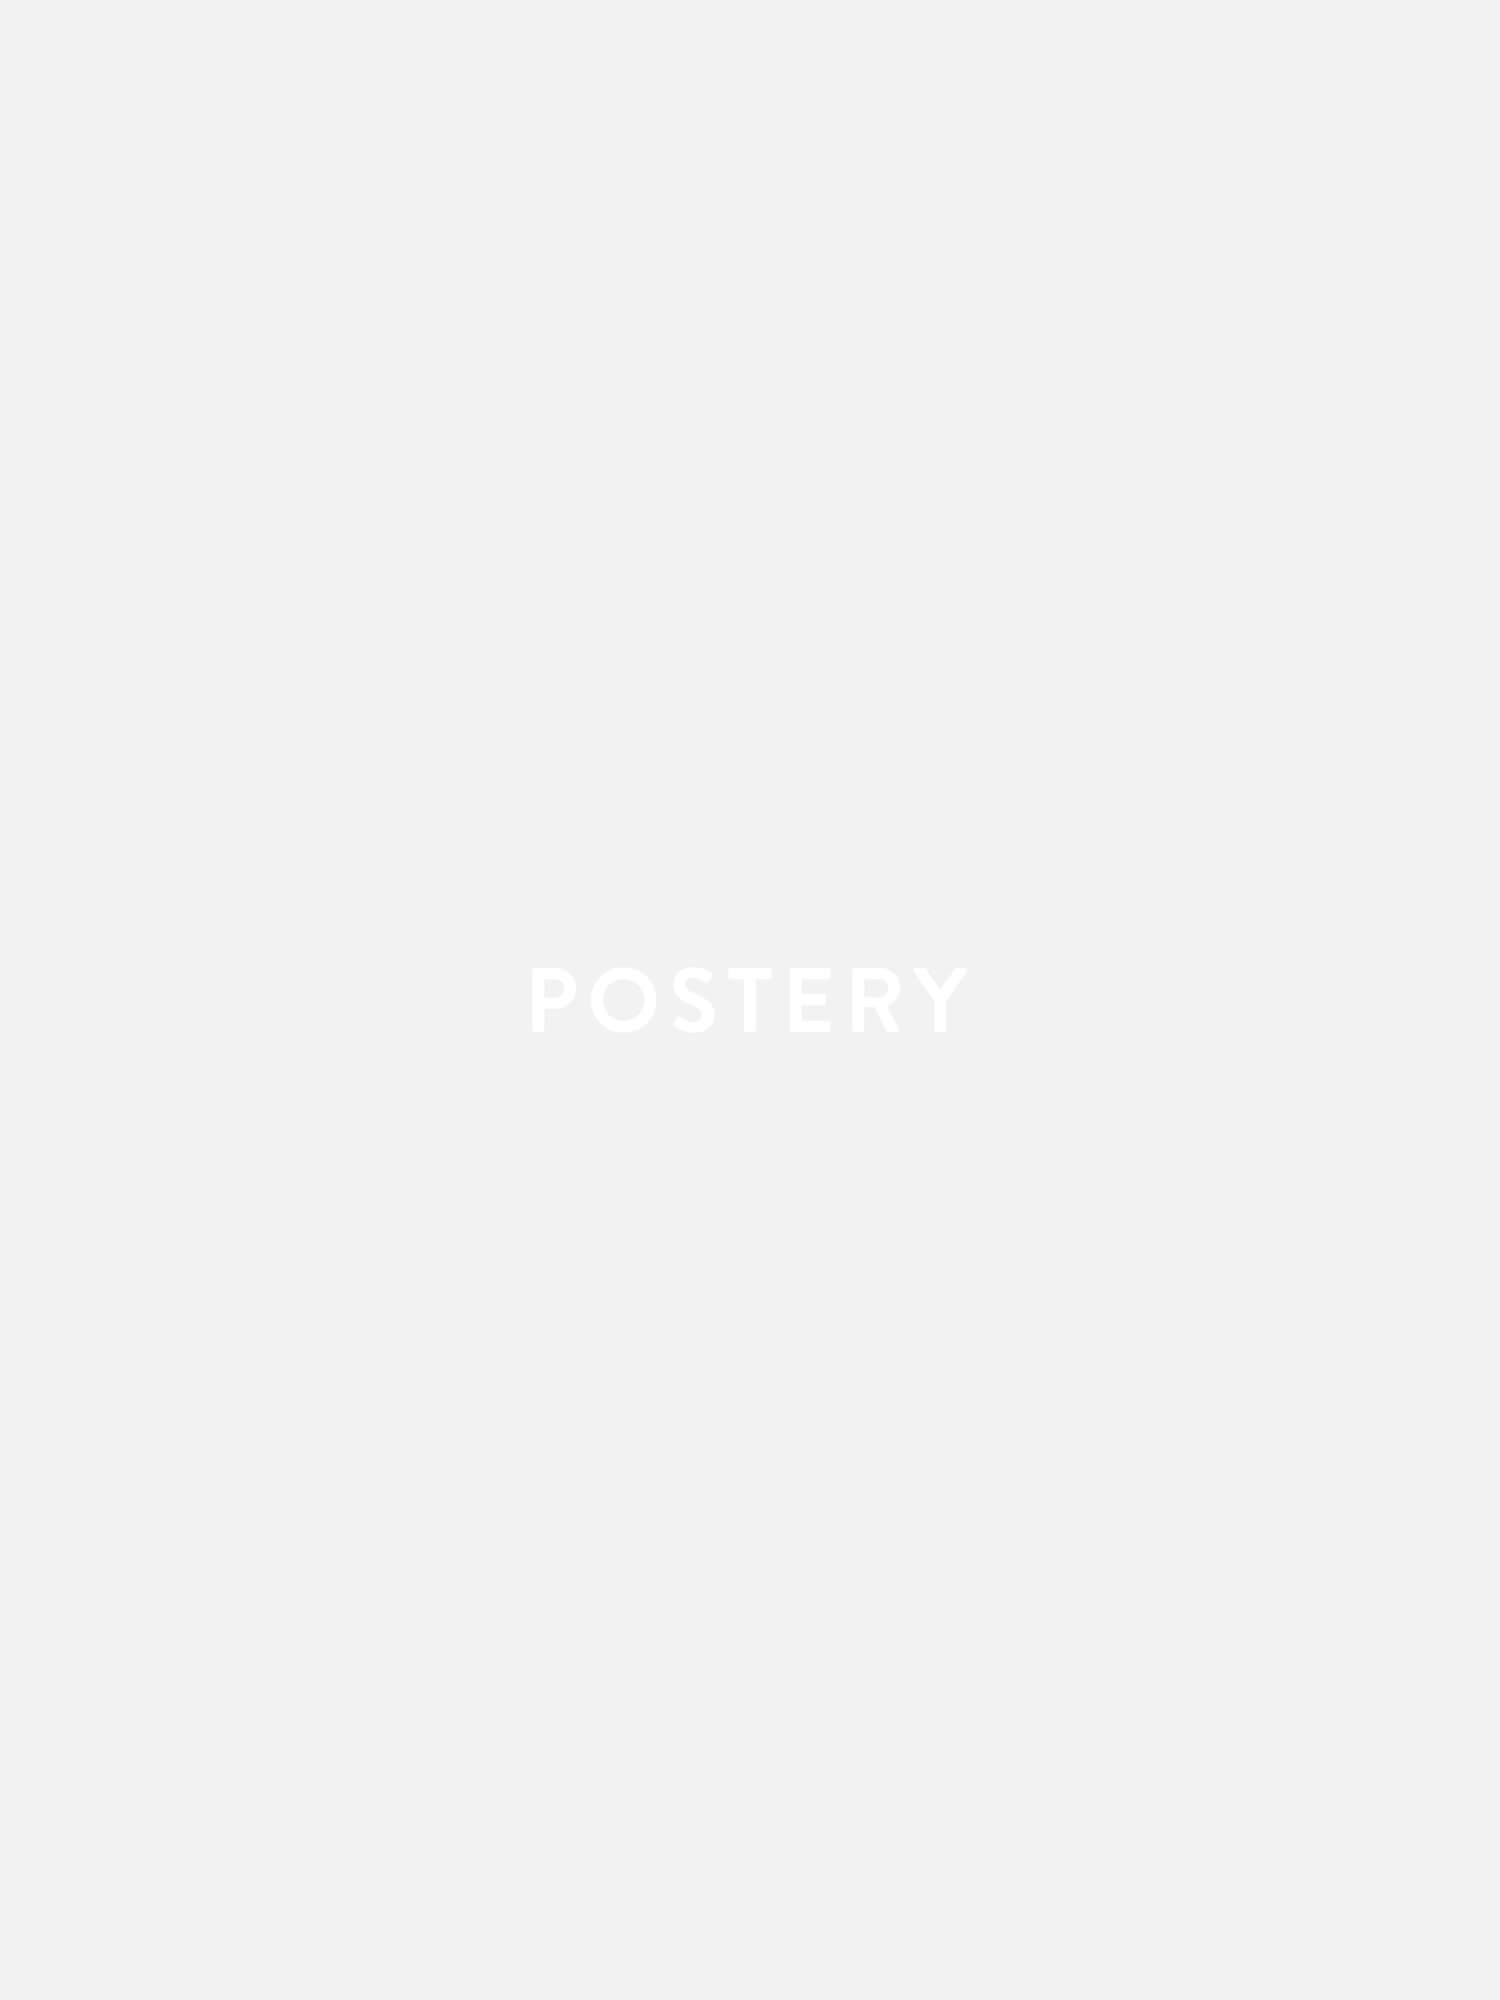 Larkspur by William Morris Poster